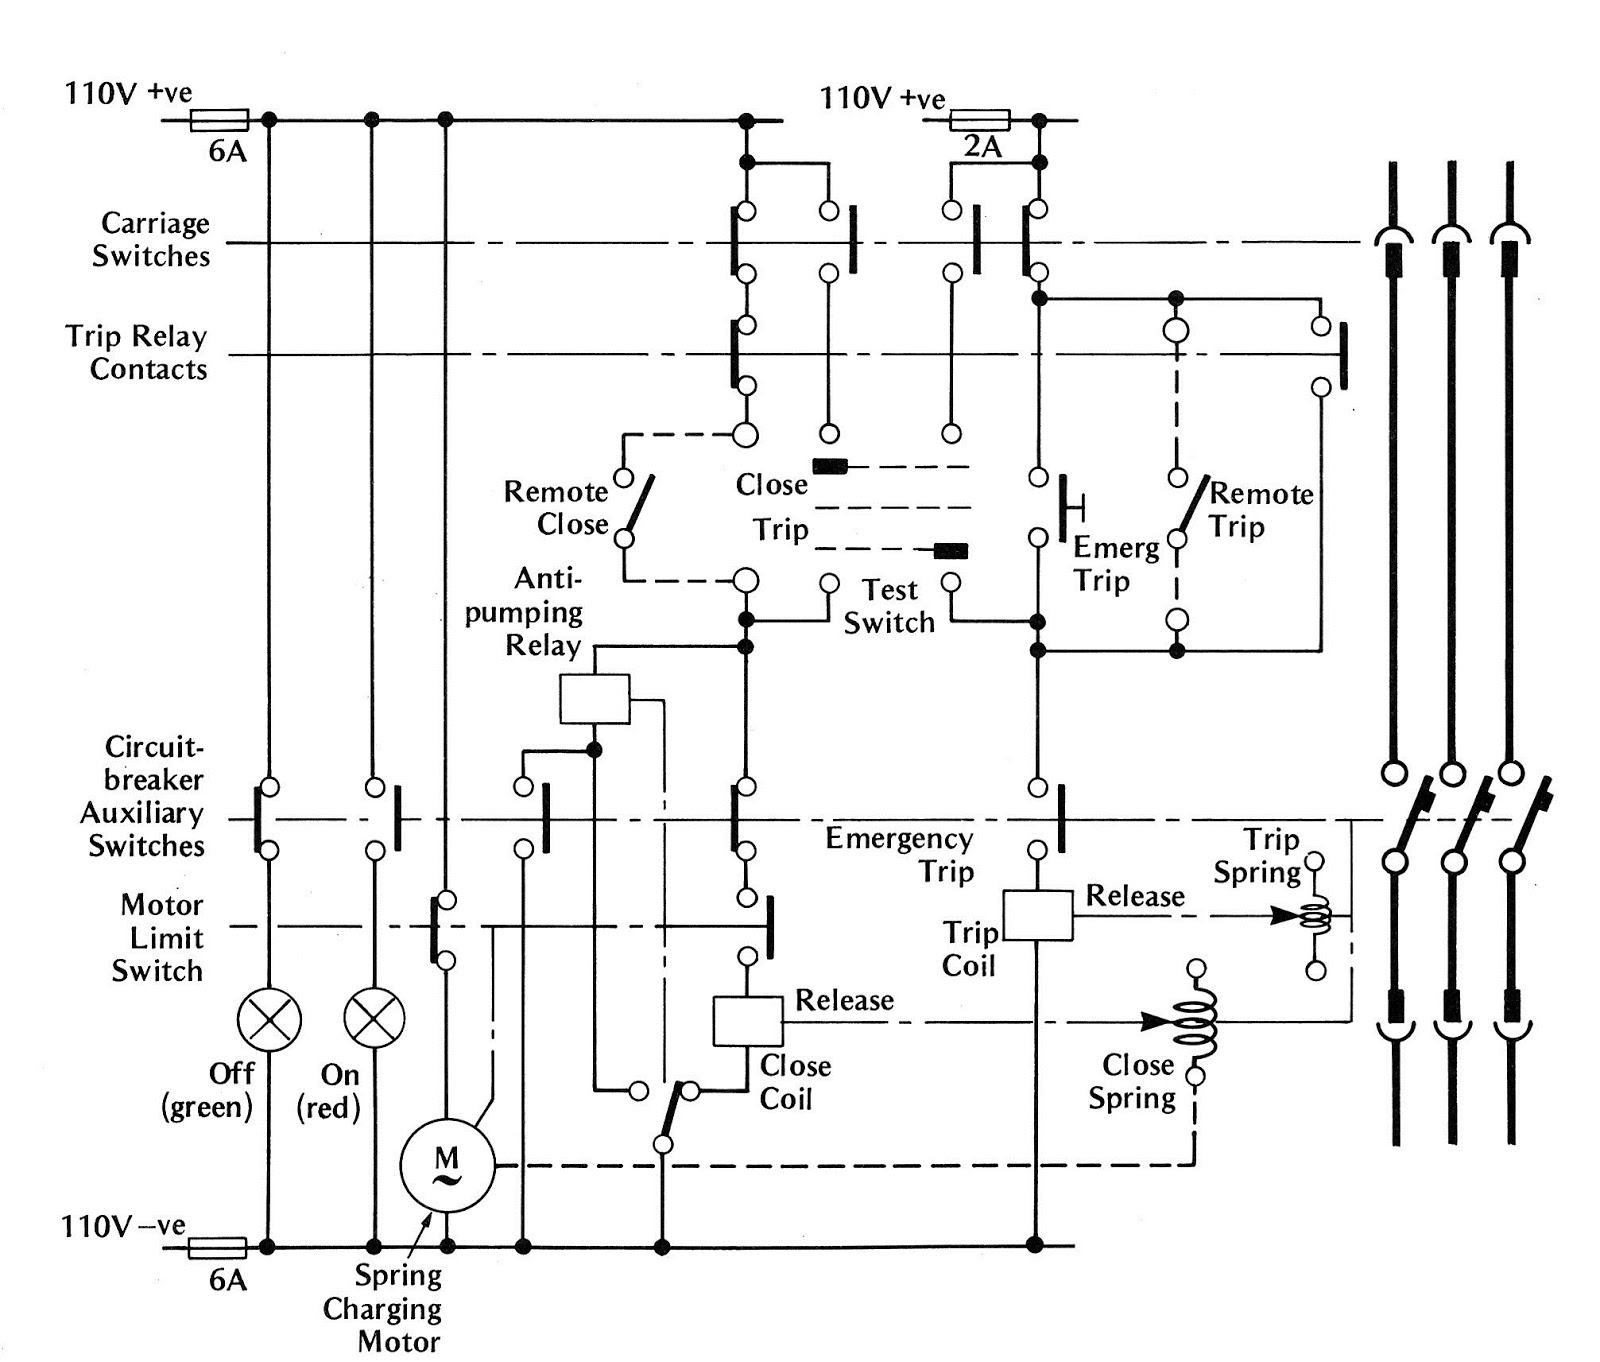 wiring diagram acb schneider wiring image wiring engineering photos videos and articels engineering search engine on wiring diagram acb schneider